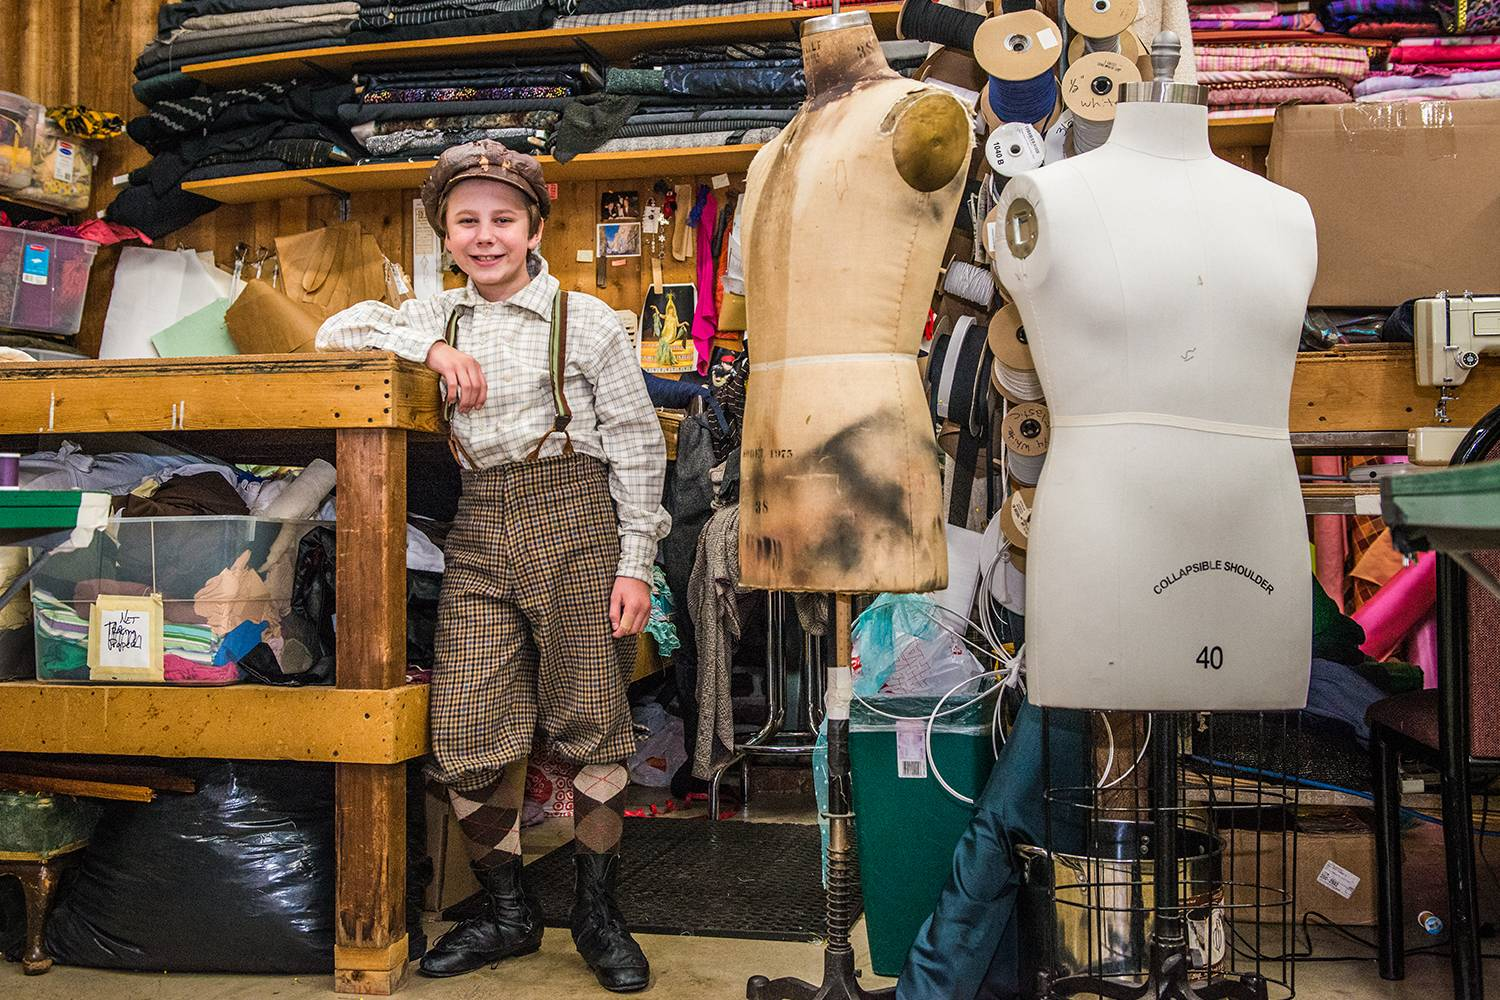 Jon-Erik Chamberlain smiles in the costume shop of the Chanhassen Dinner Theatre.